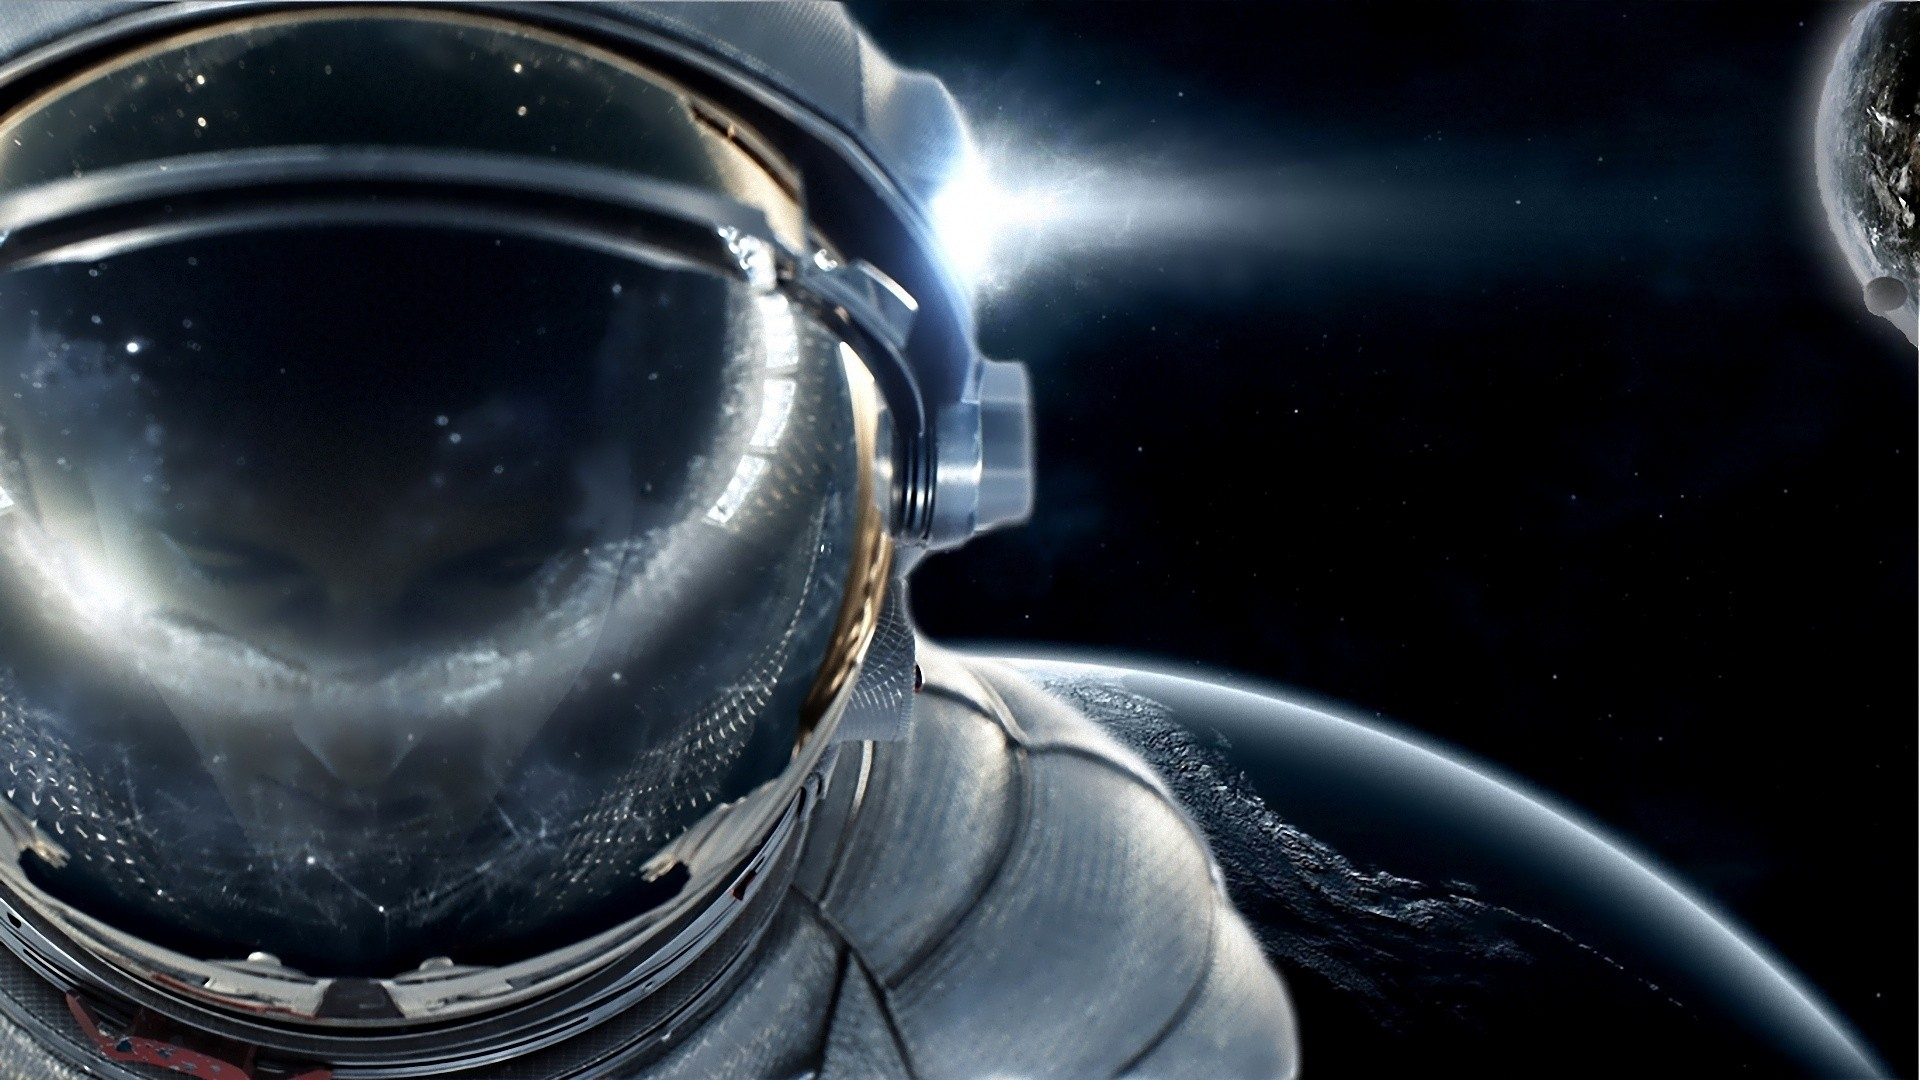 Outer space astronomy astronauts spaceman 1920x1080 wallpaper wallpaper 1920x1080 www.wallpaperswa.com